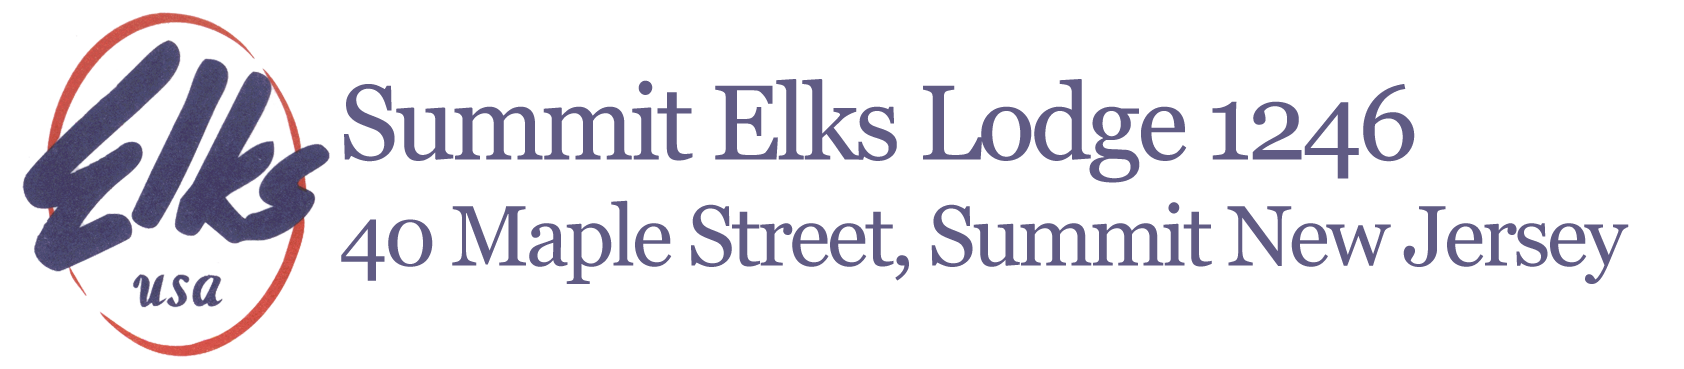 Welcome to Summit Elks Lodge 1246